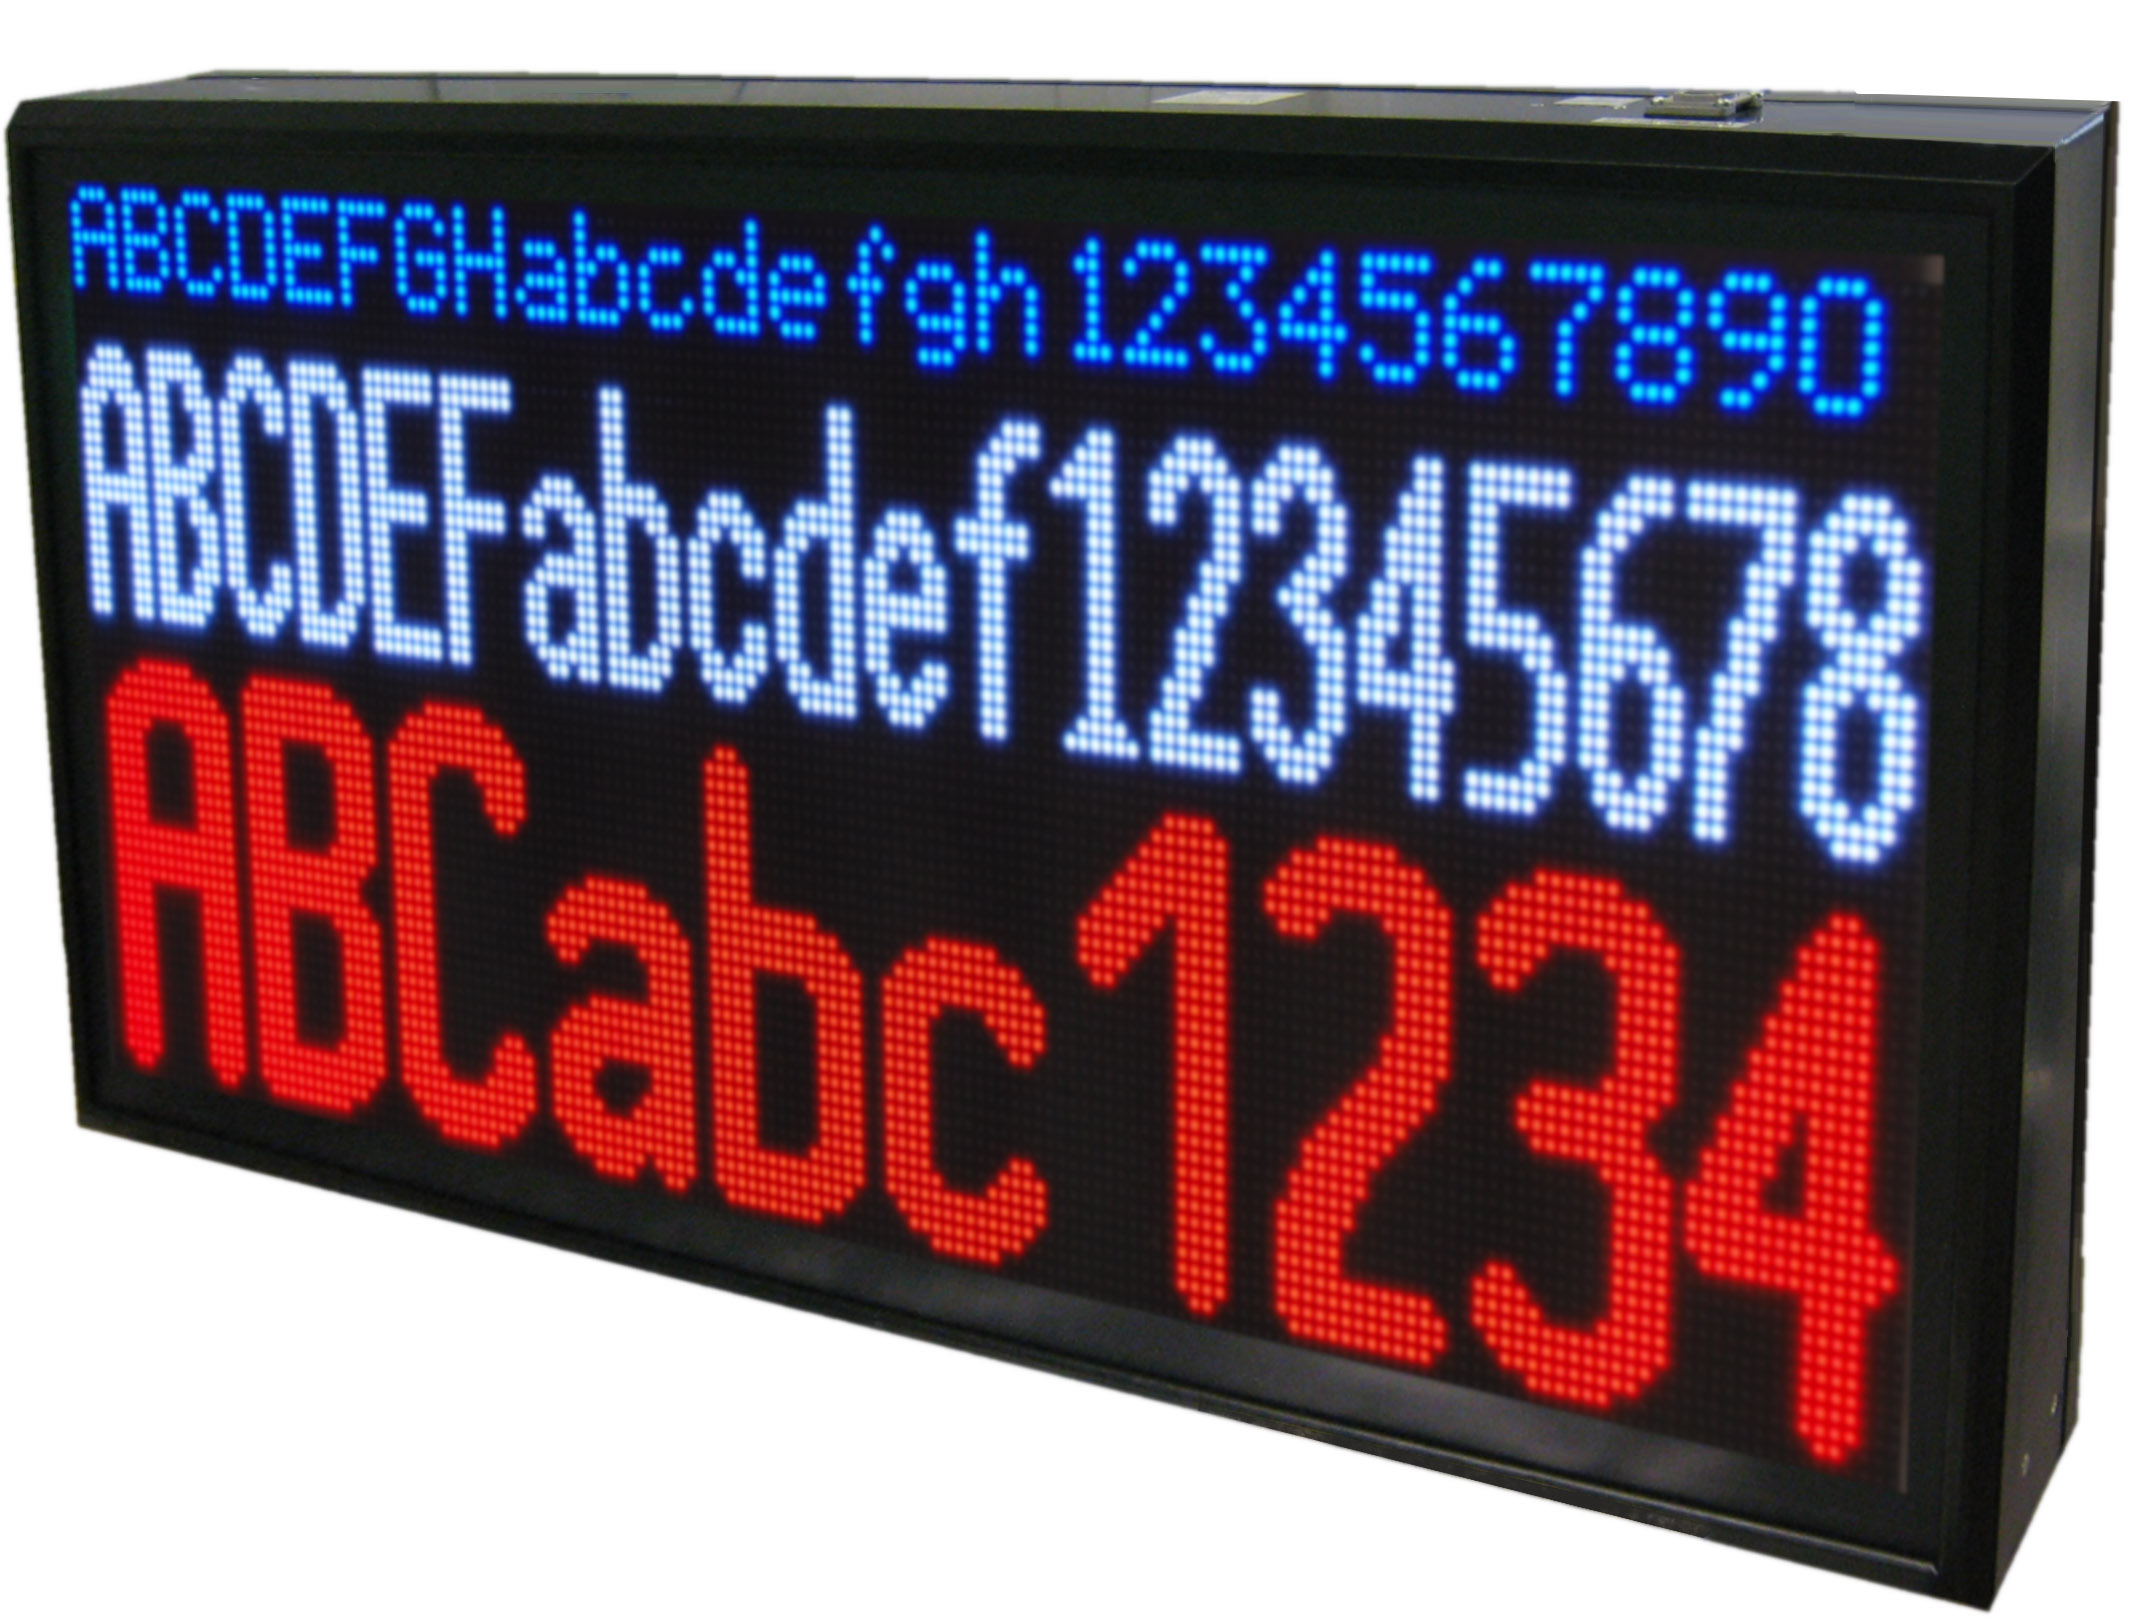 Multi-line alphanumeric large displays, 16 colors, indoor/outdoor, modular design, numerous different sizes available